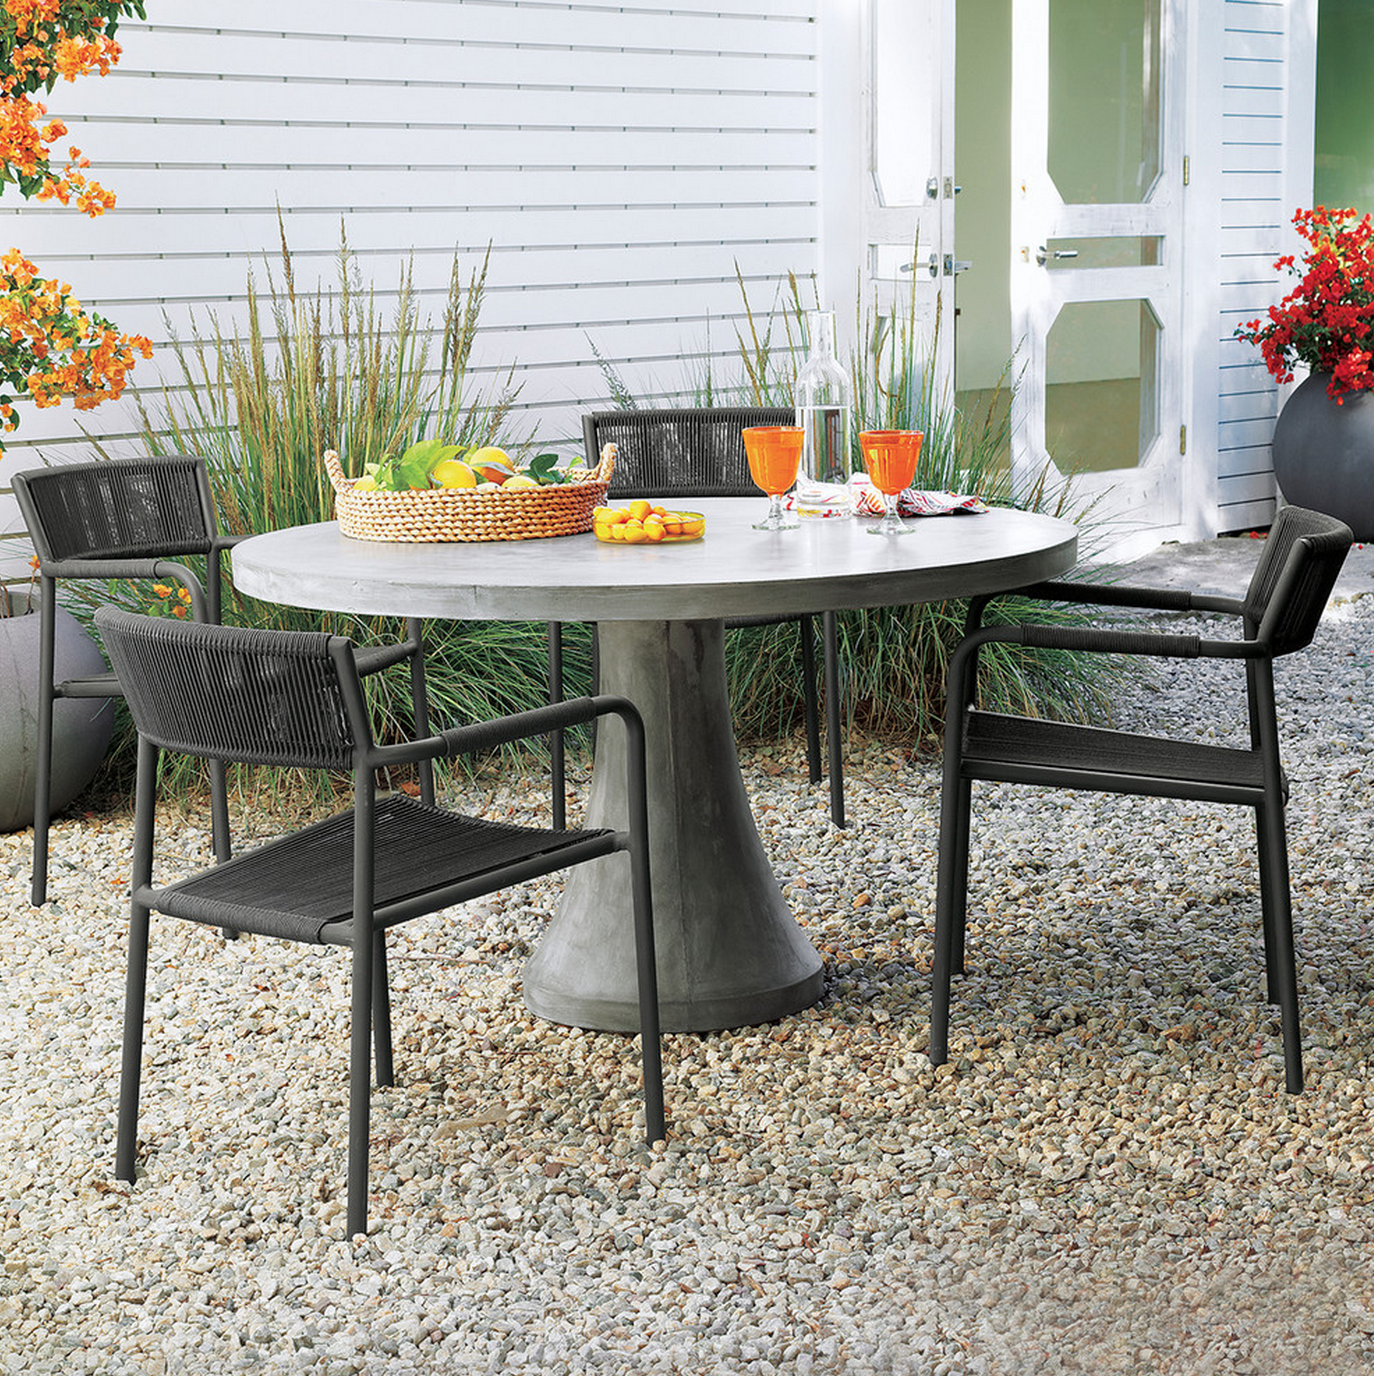 Morocco Concrete Dining Table In Morocco Outdoor Dining Concrete Dining Table Outdoor Dining Chairs Patio Dining Table